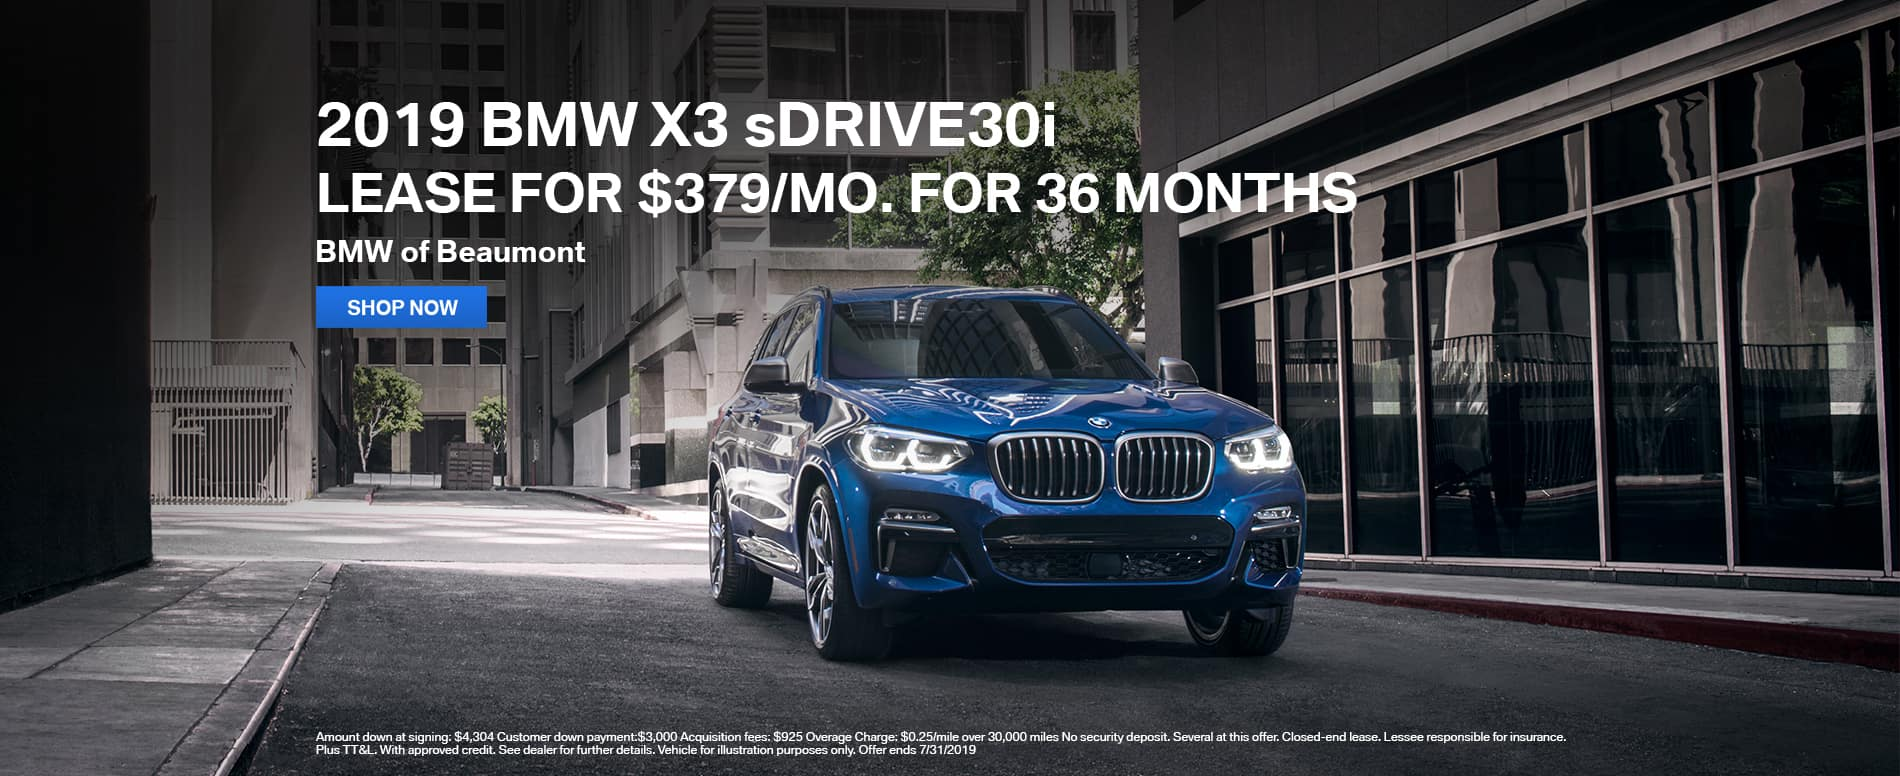 lease-2019-bmw-x3-sdrive30i-for-379-beaumont